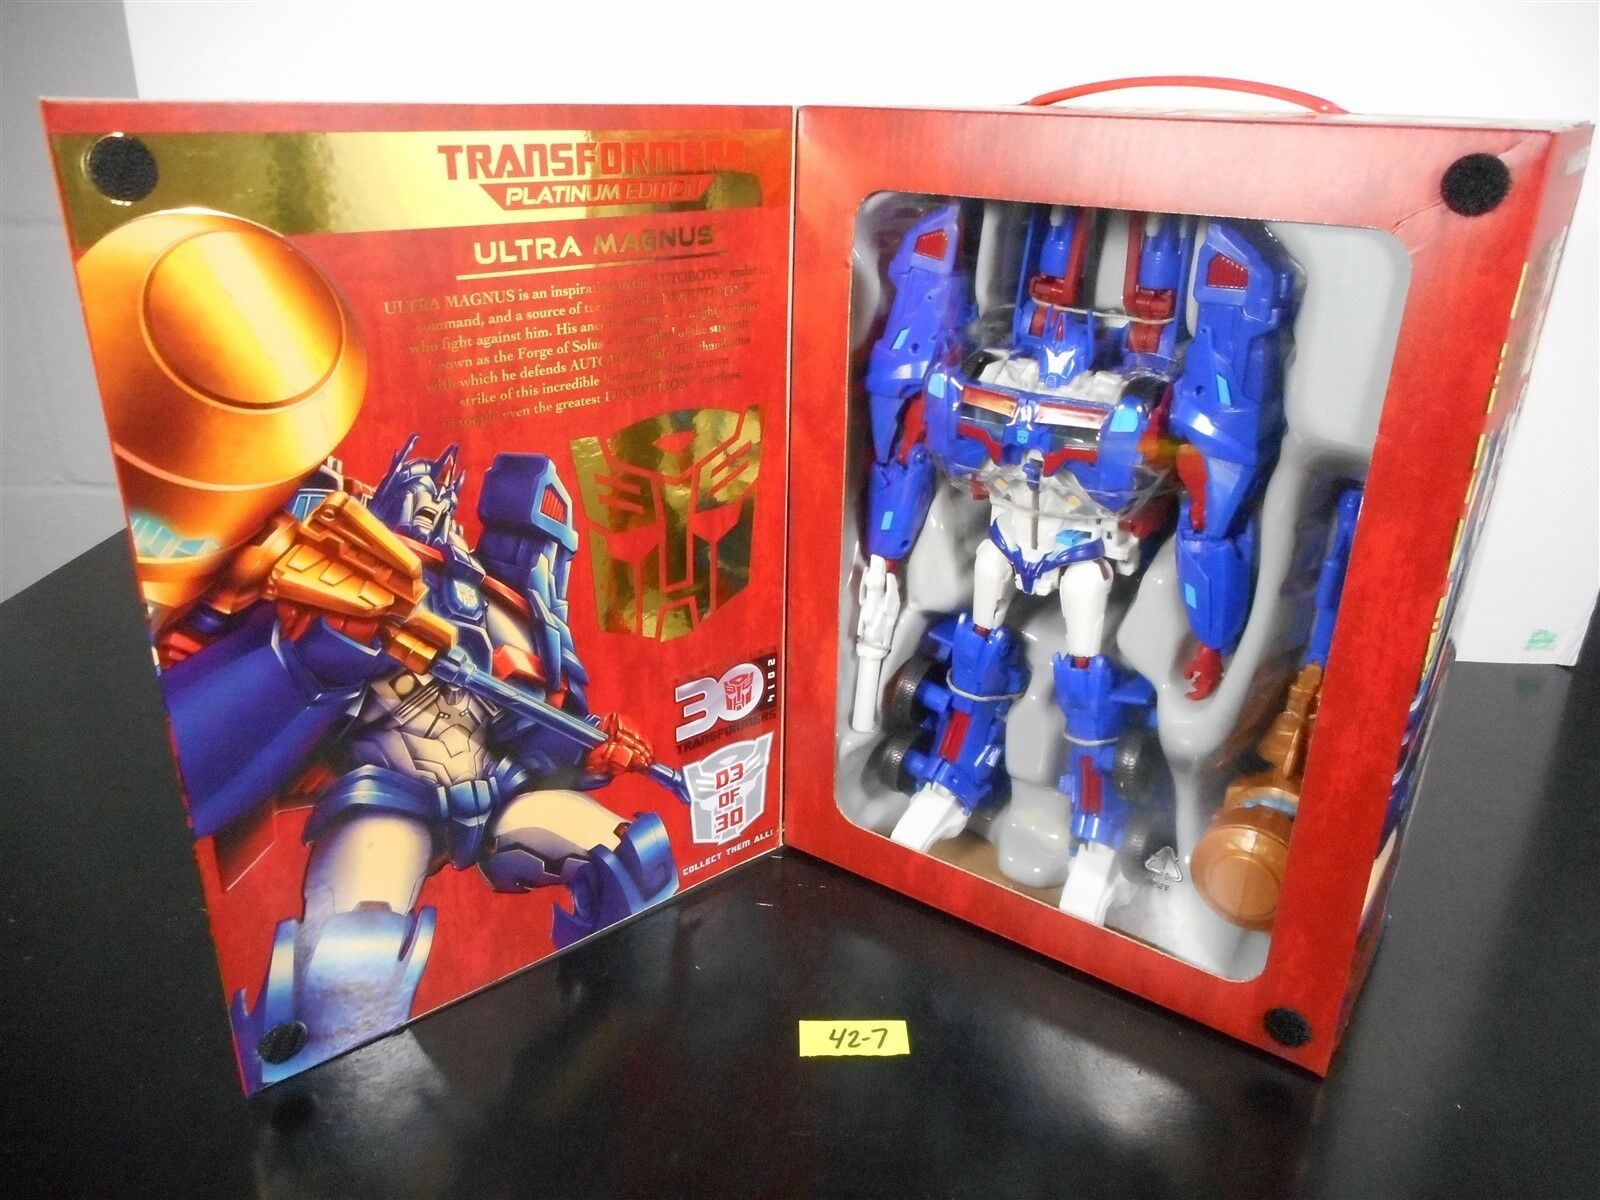 Comme neuf & sealed    Transformers Platinum Edition Ultra Magnus 2013 EXCLUSIF    42-7